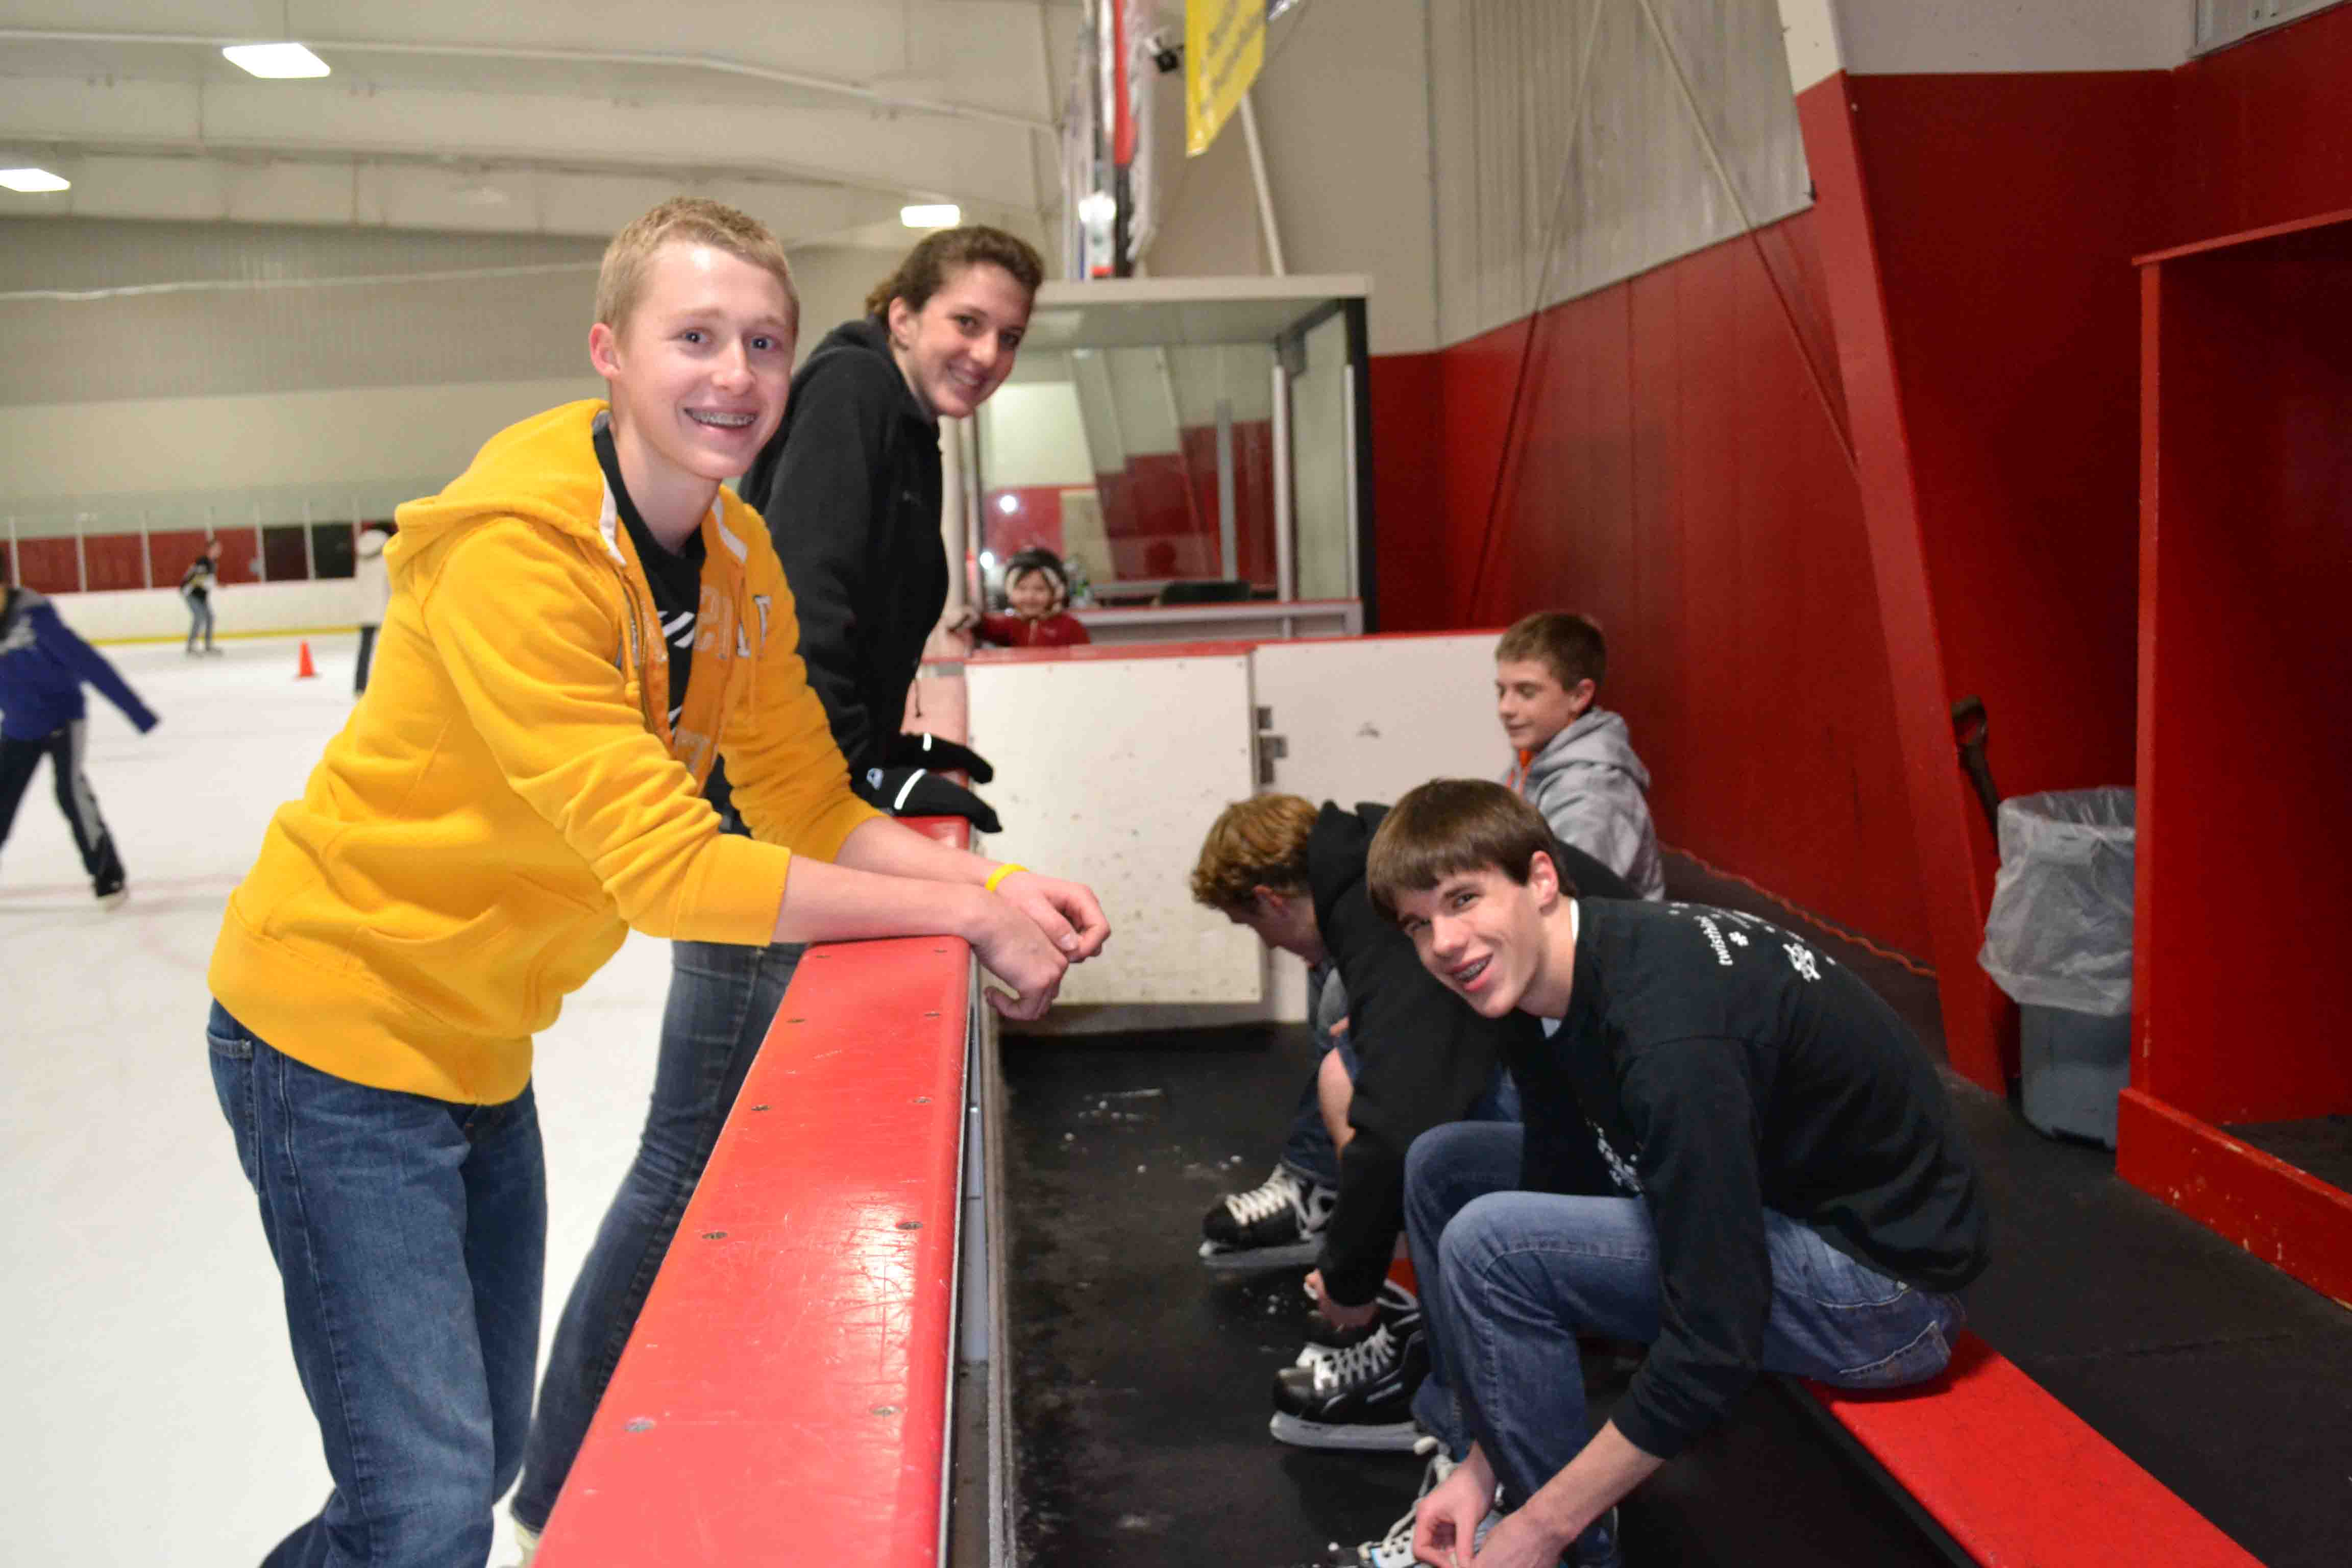 Trevor and Emily wait for Kray, Trey and Blake to lace up their skates.